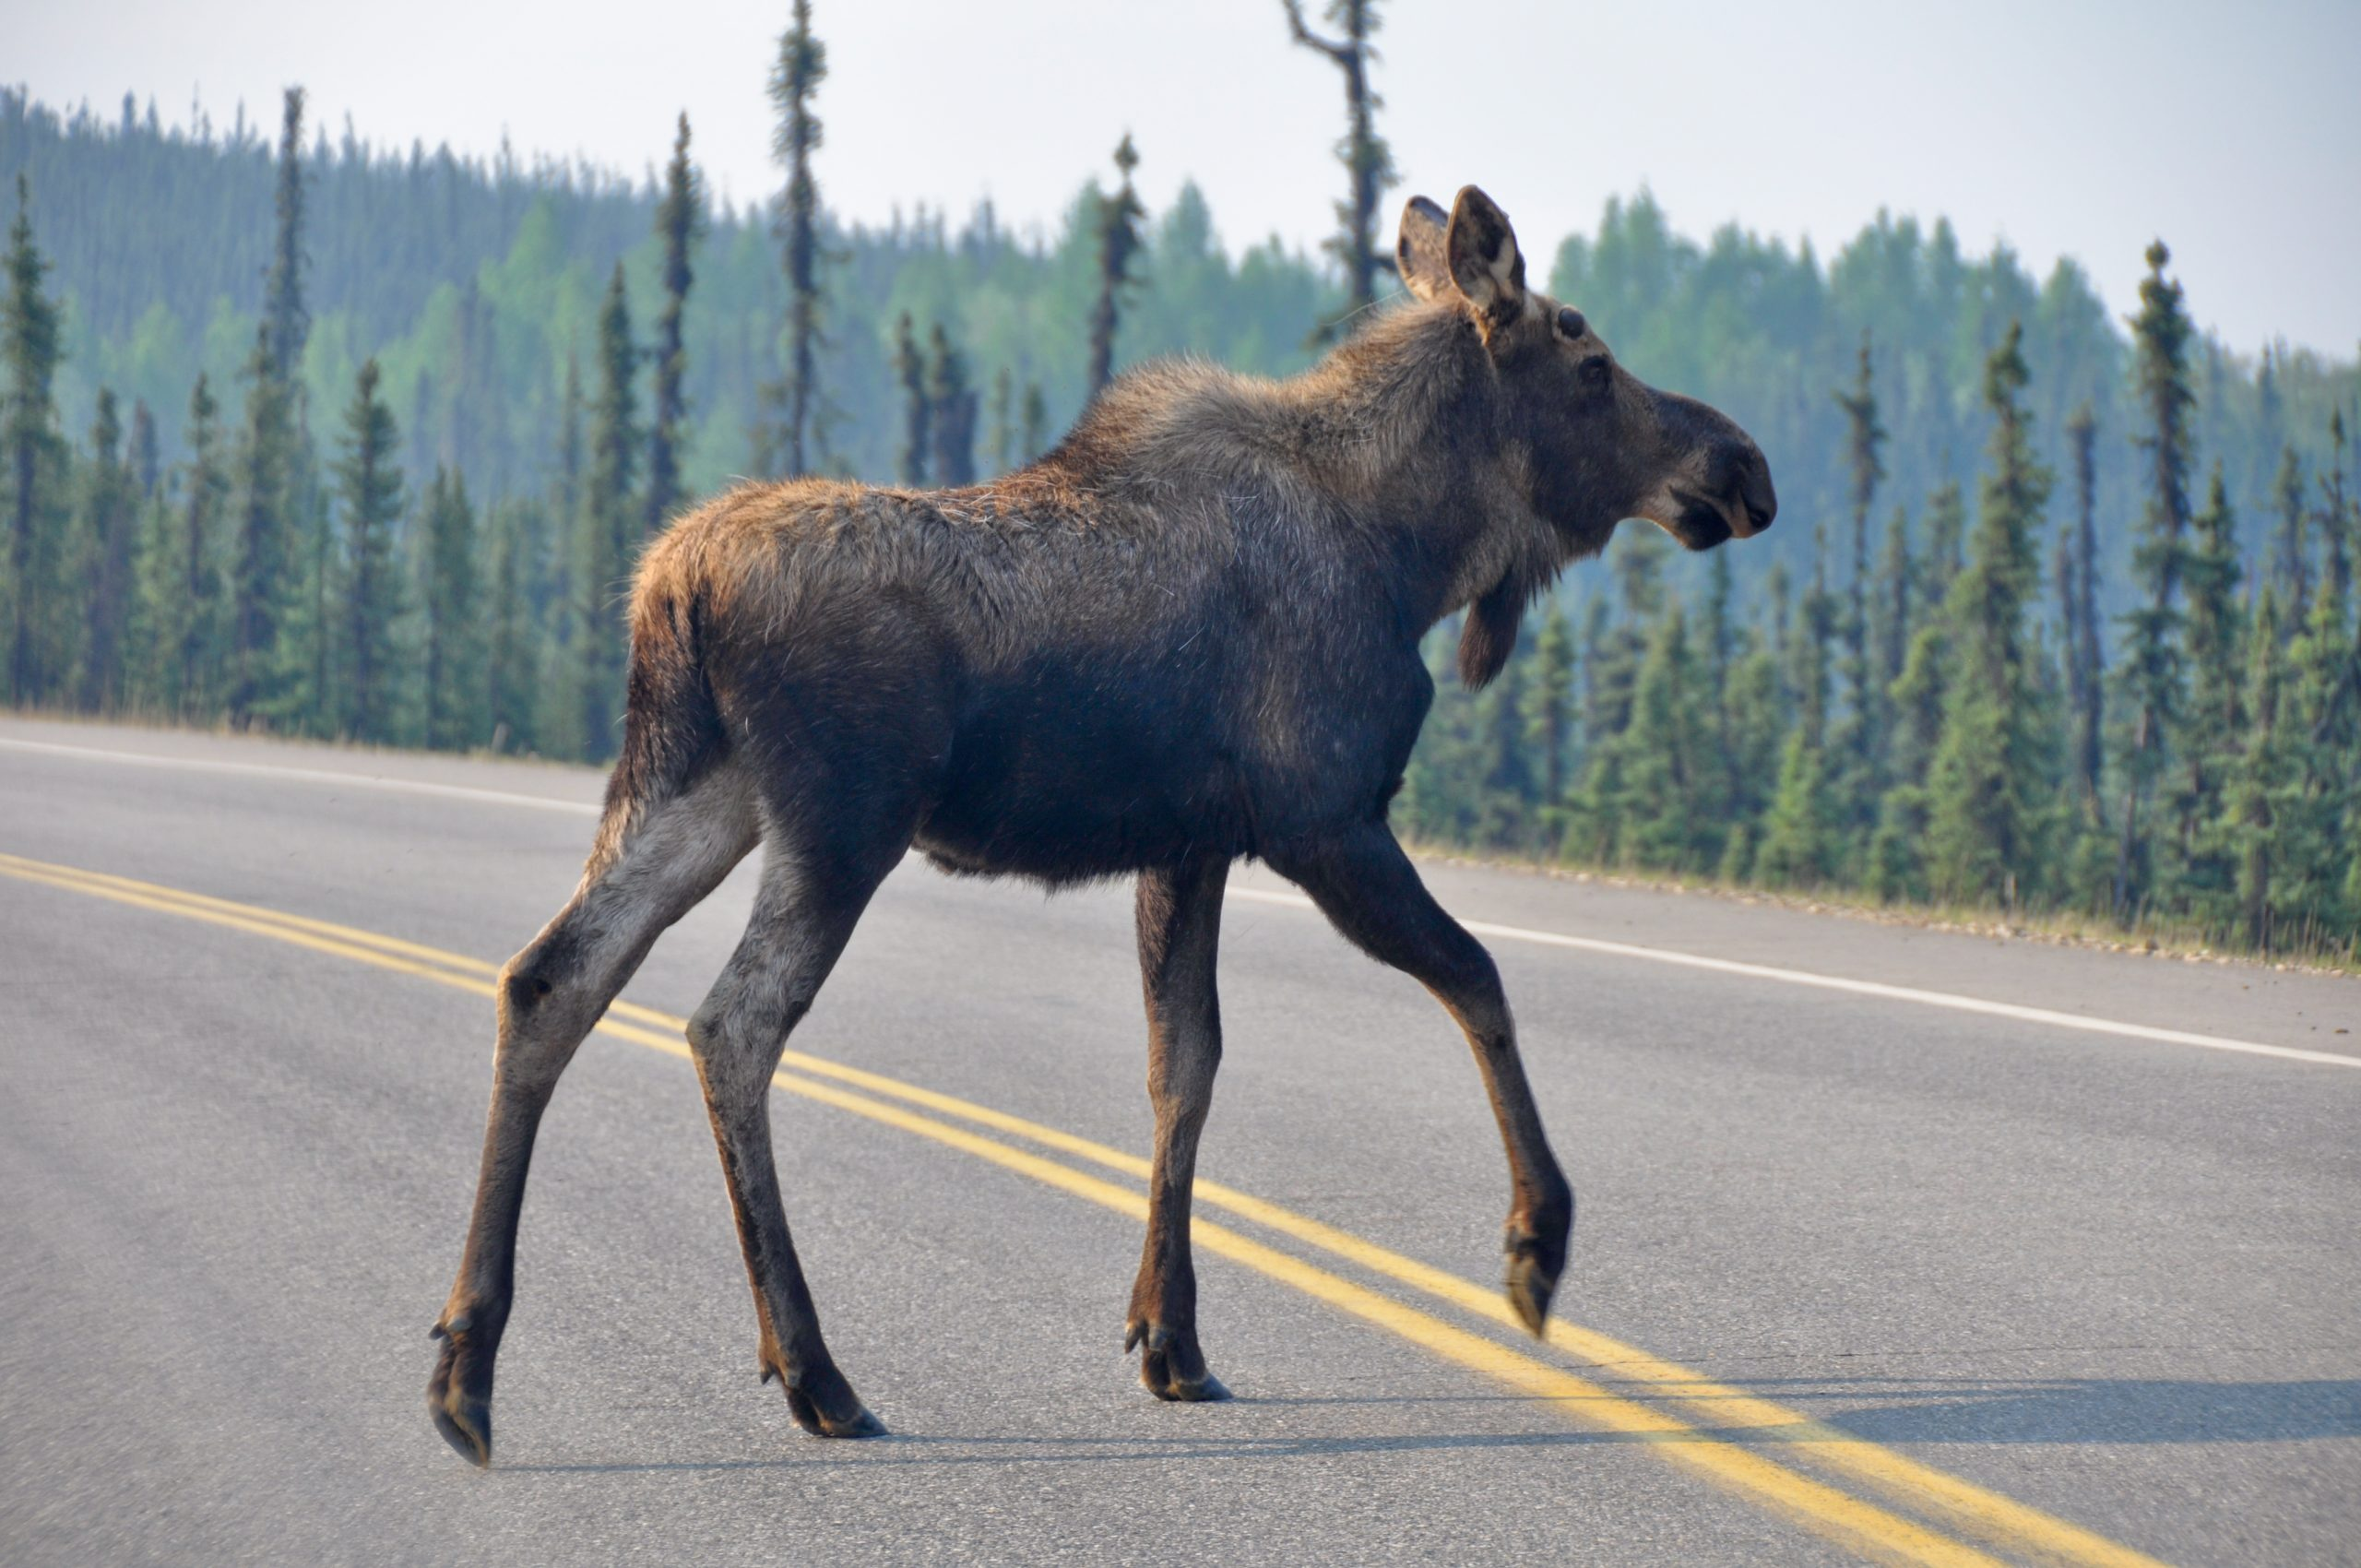 Moose crossing the road